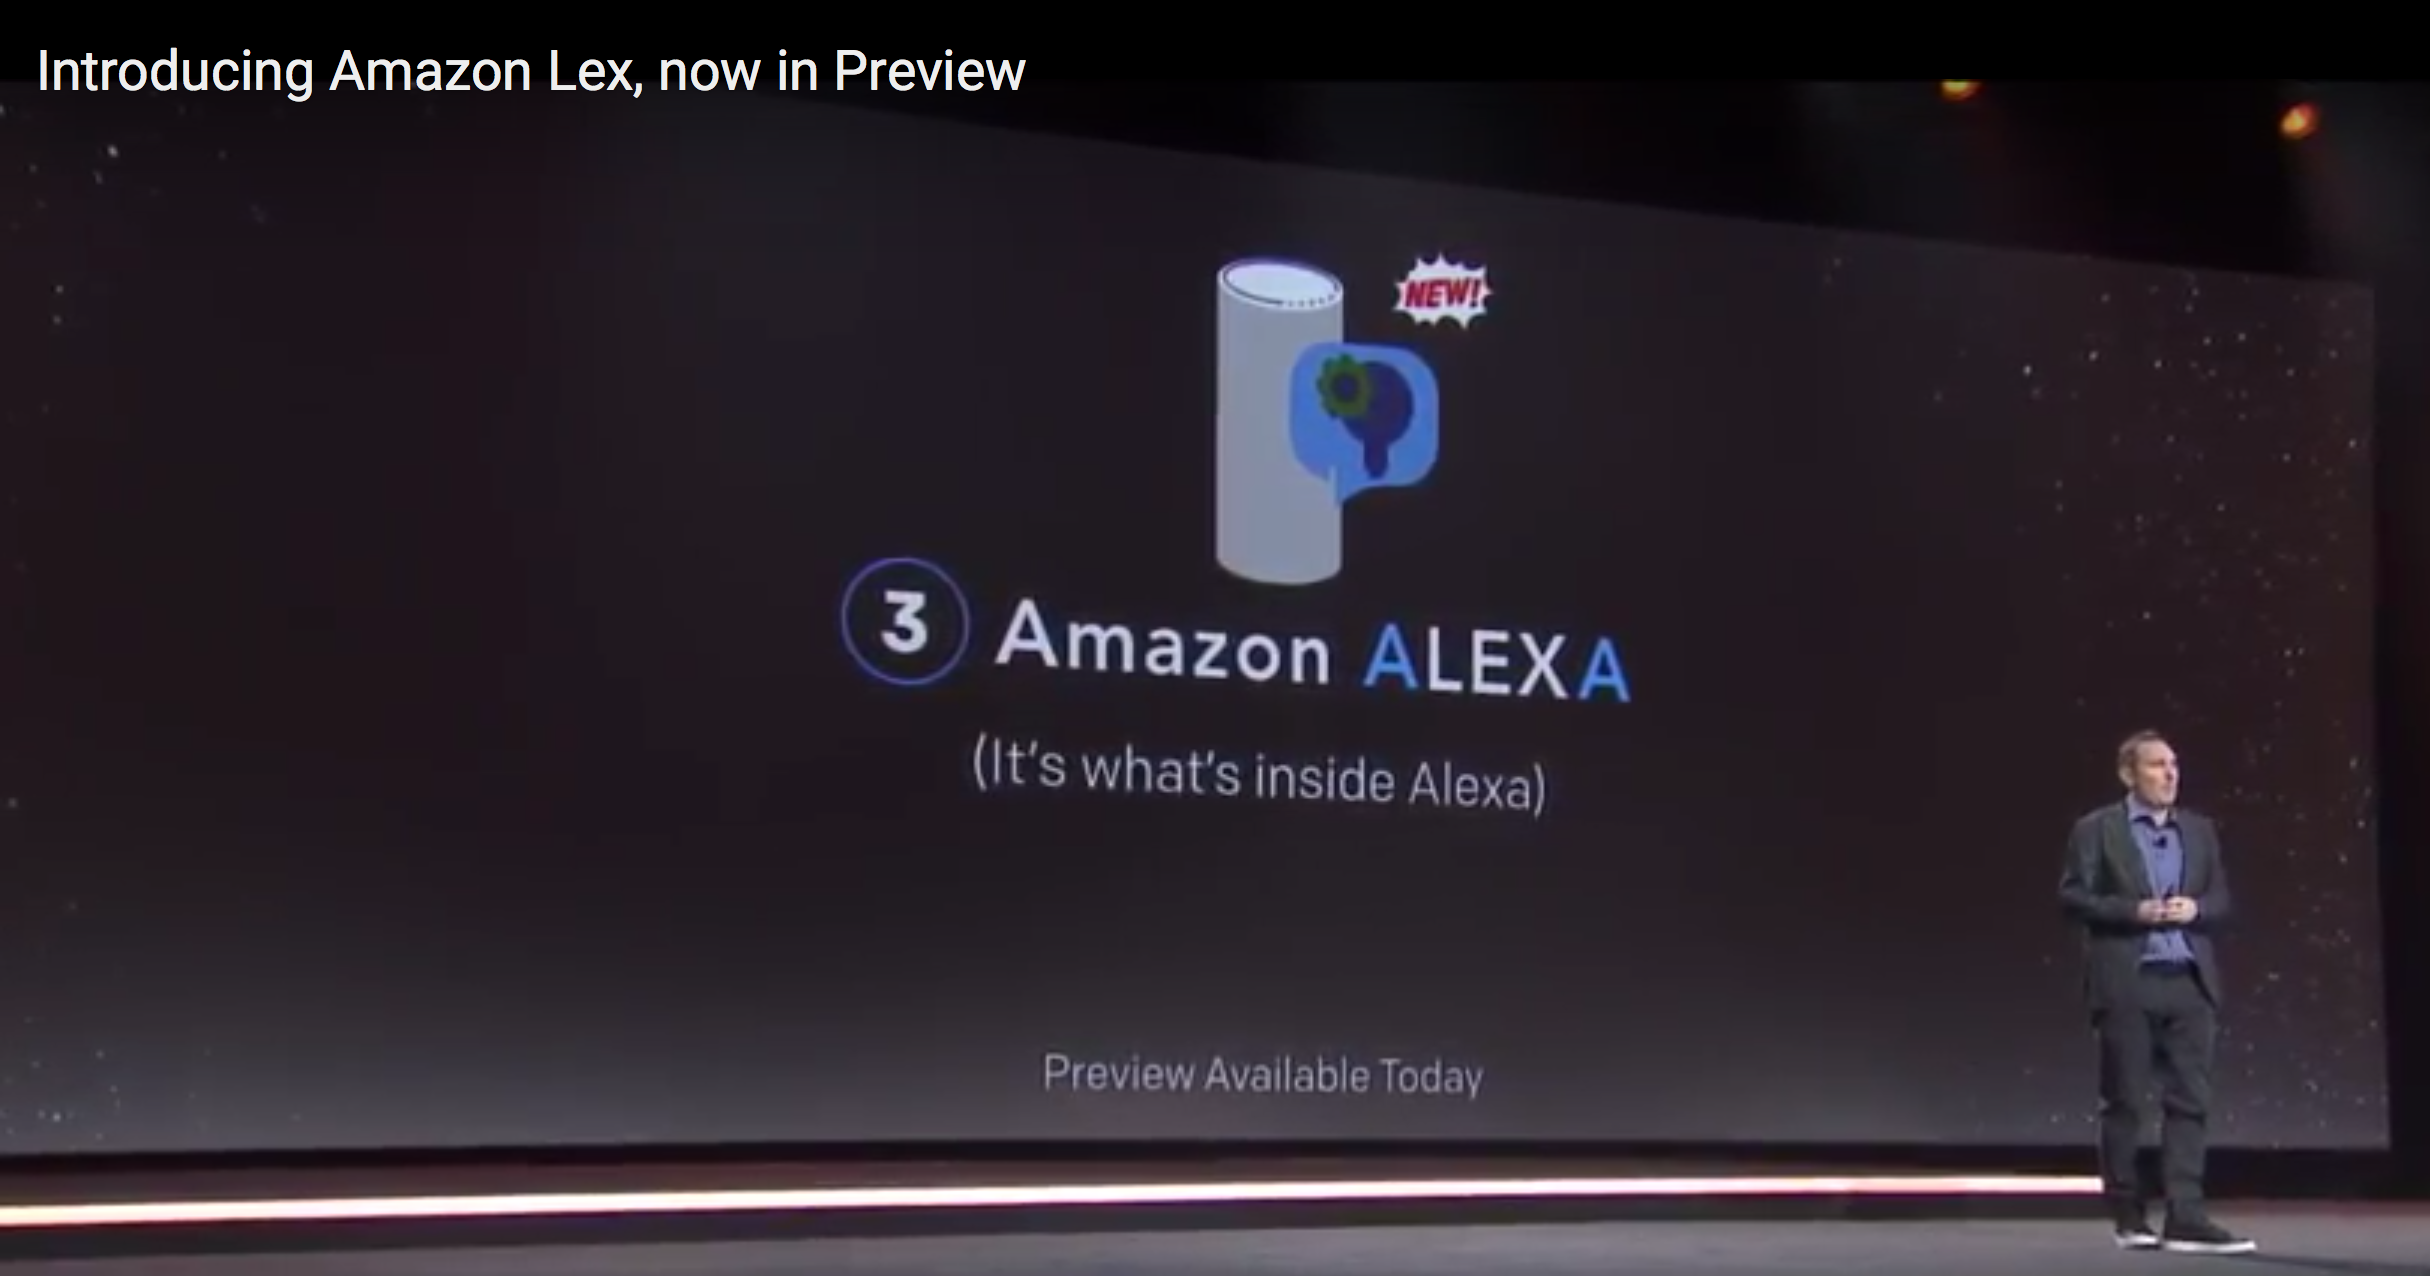 Introducing Amazon Lex, Now in Preview